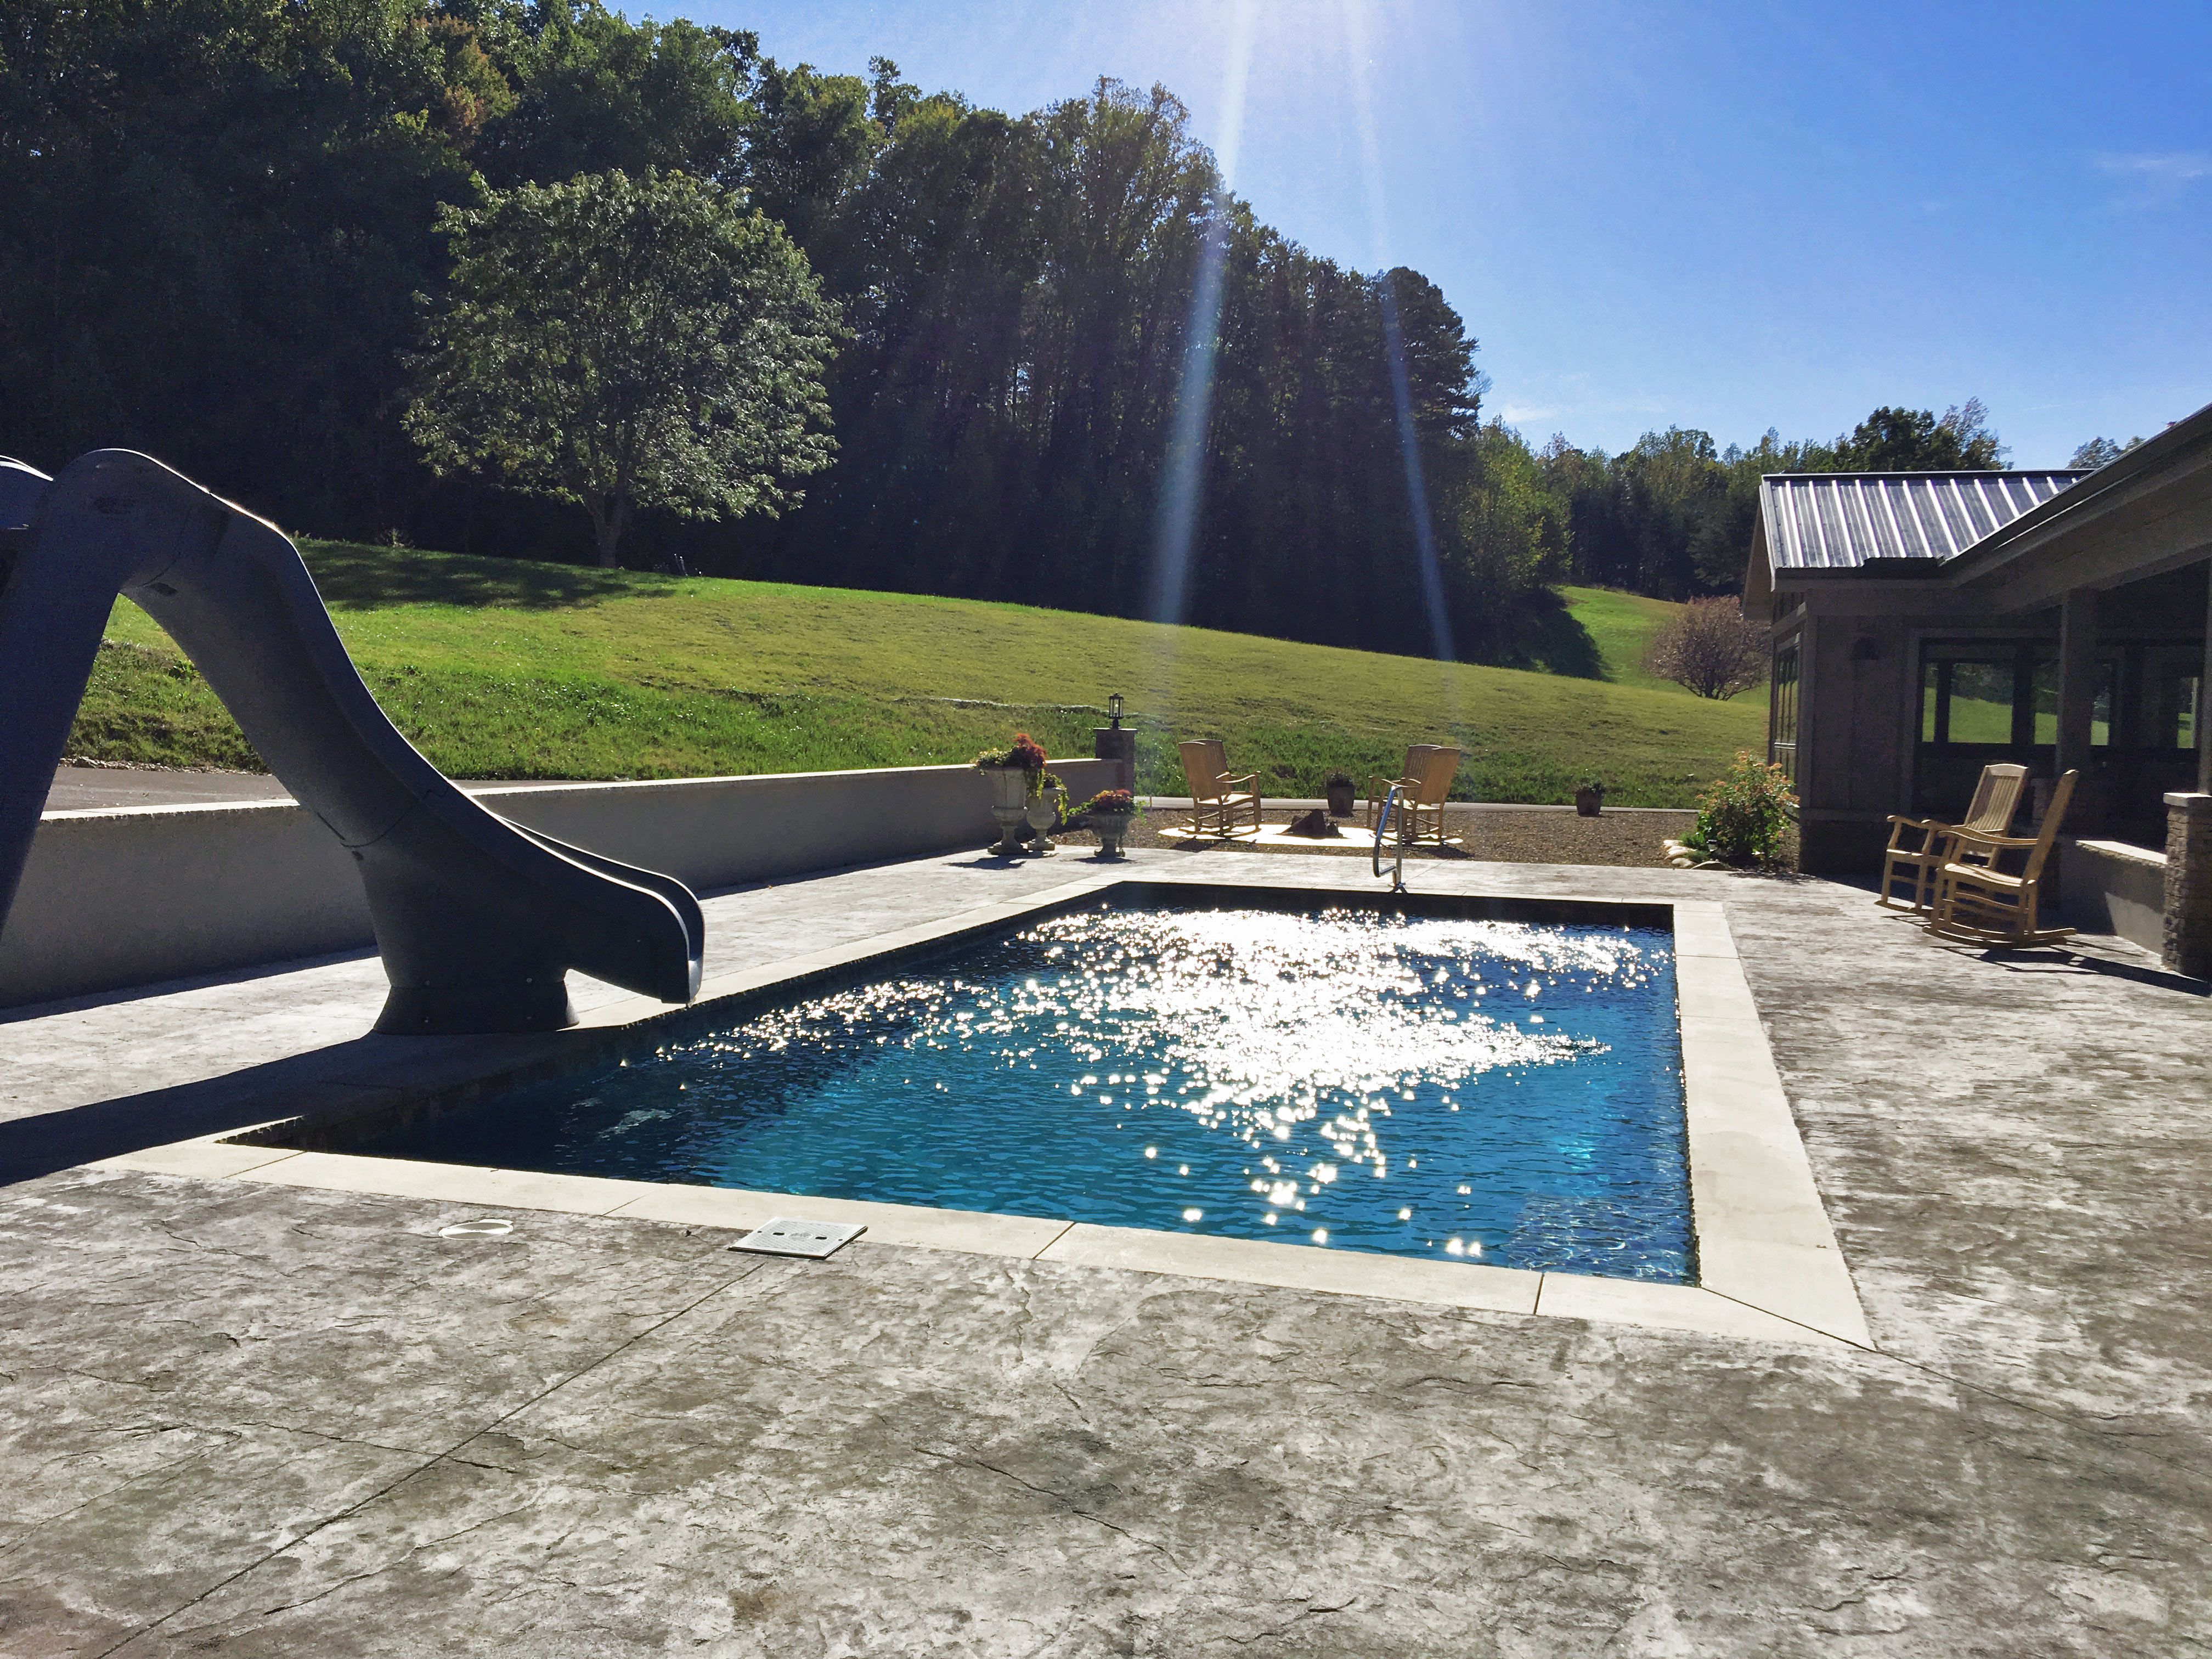 The Newest Fiberglass Swimming Pool From Imagine Pools Is The Illusion Which Features A Full